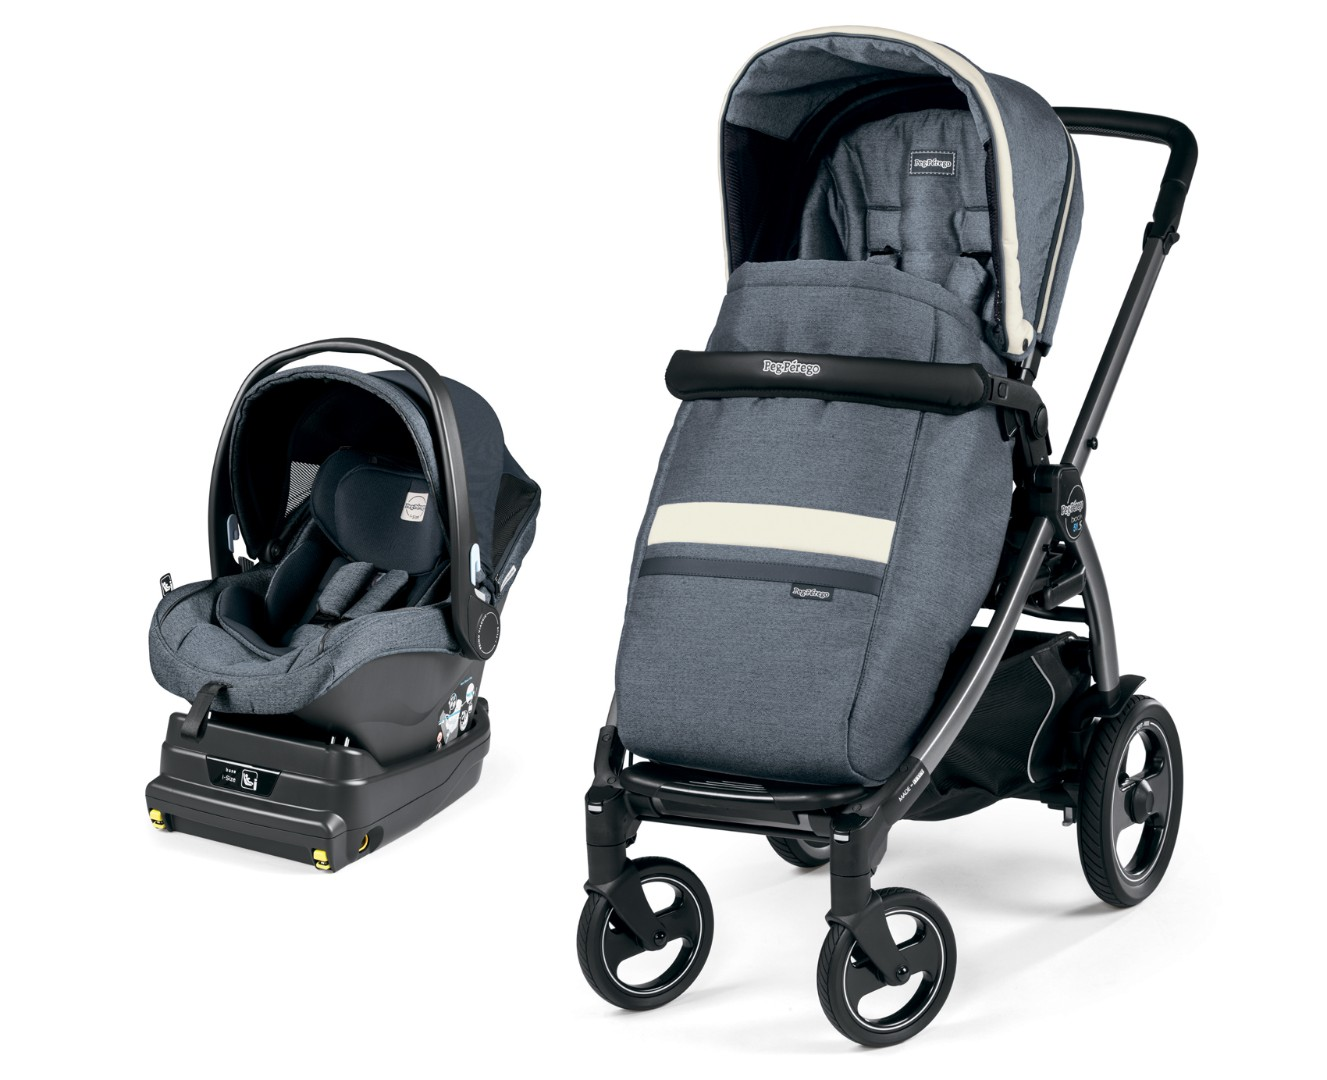 Коляска 2 в 1 Peg-Perego Book 51 S i-Size Travel System Luxe Mirage